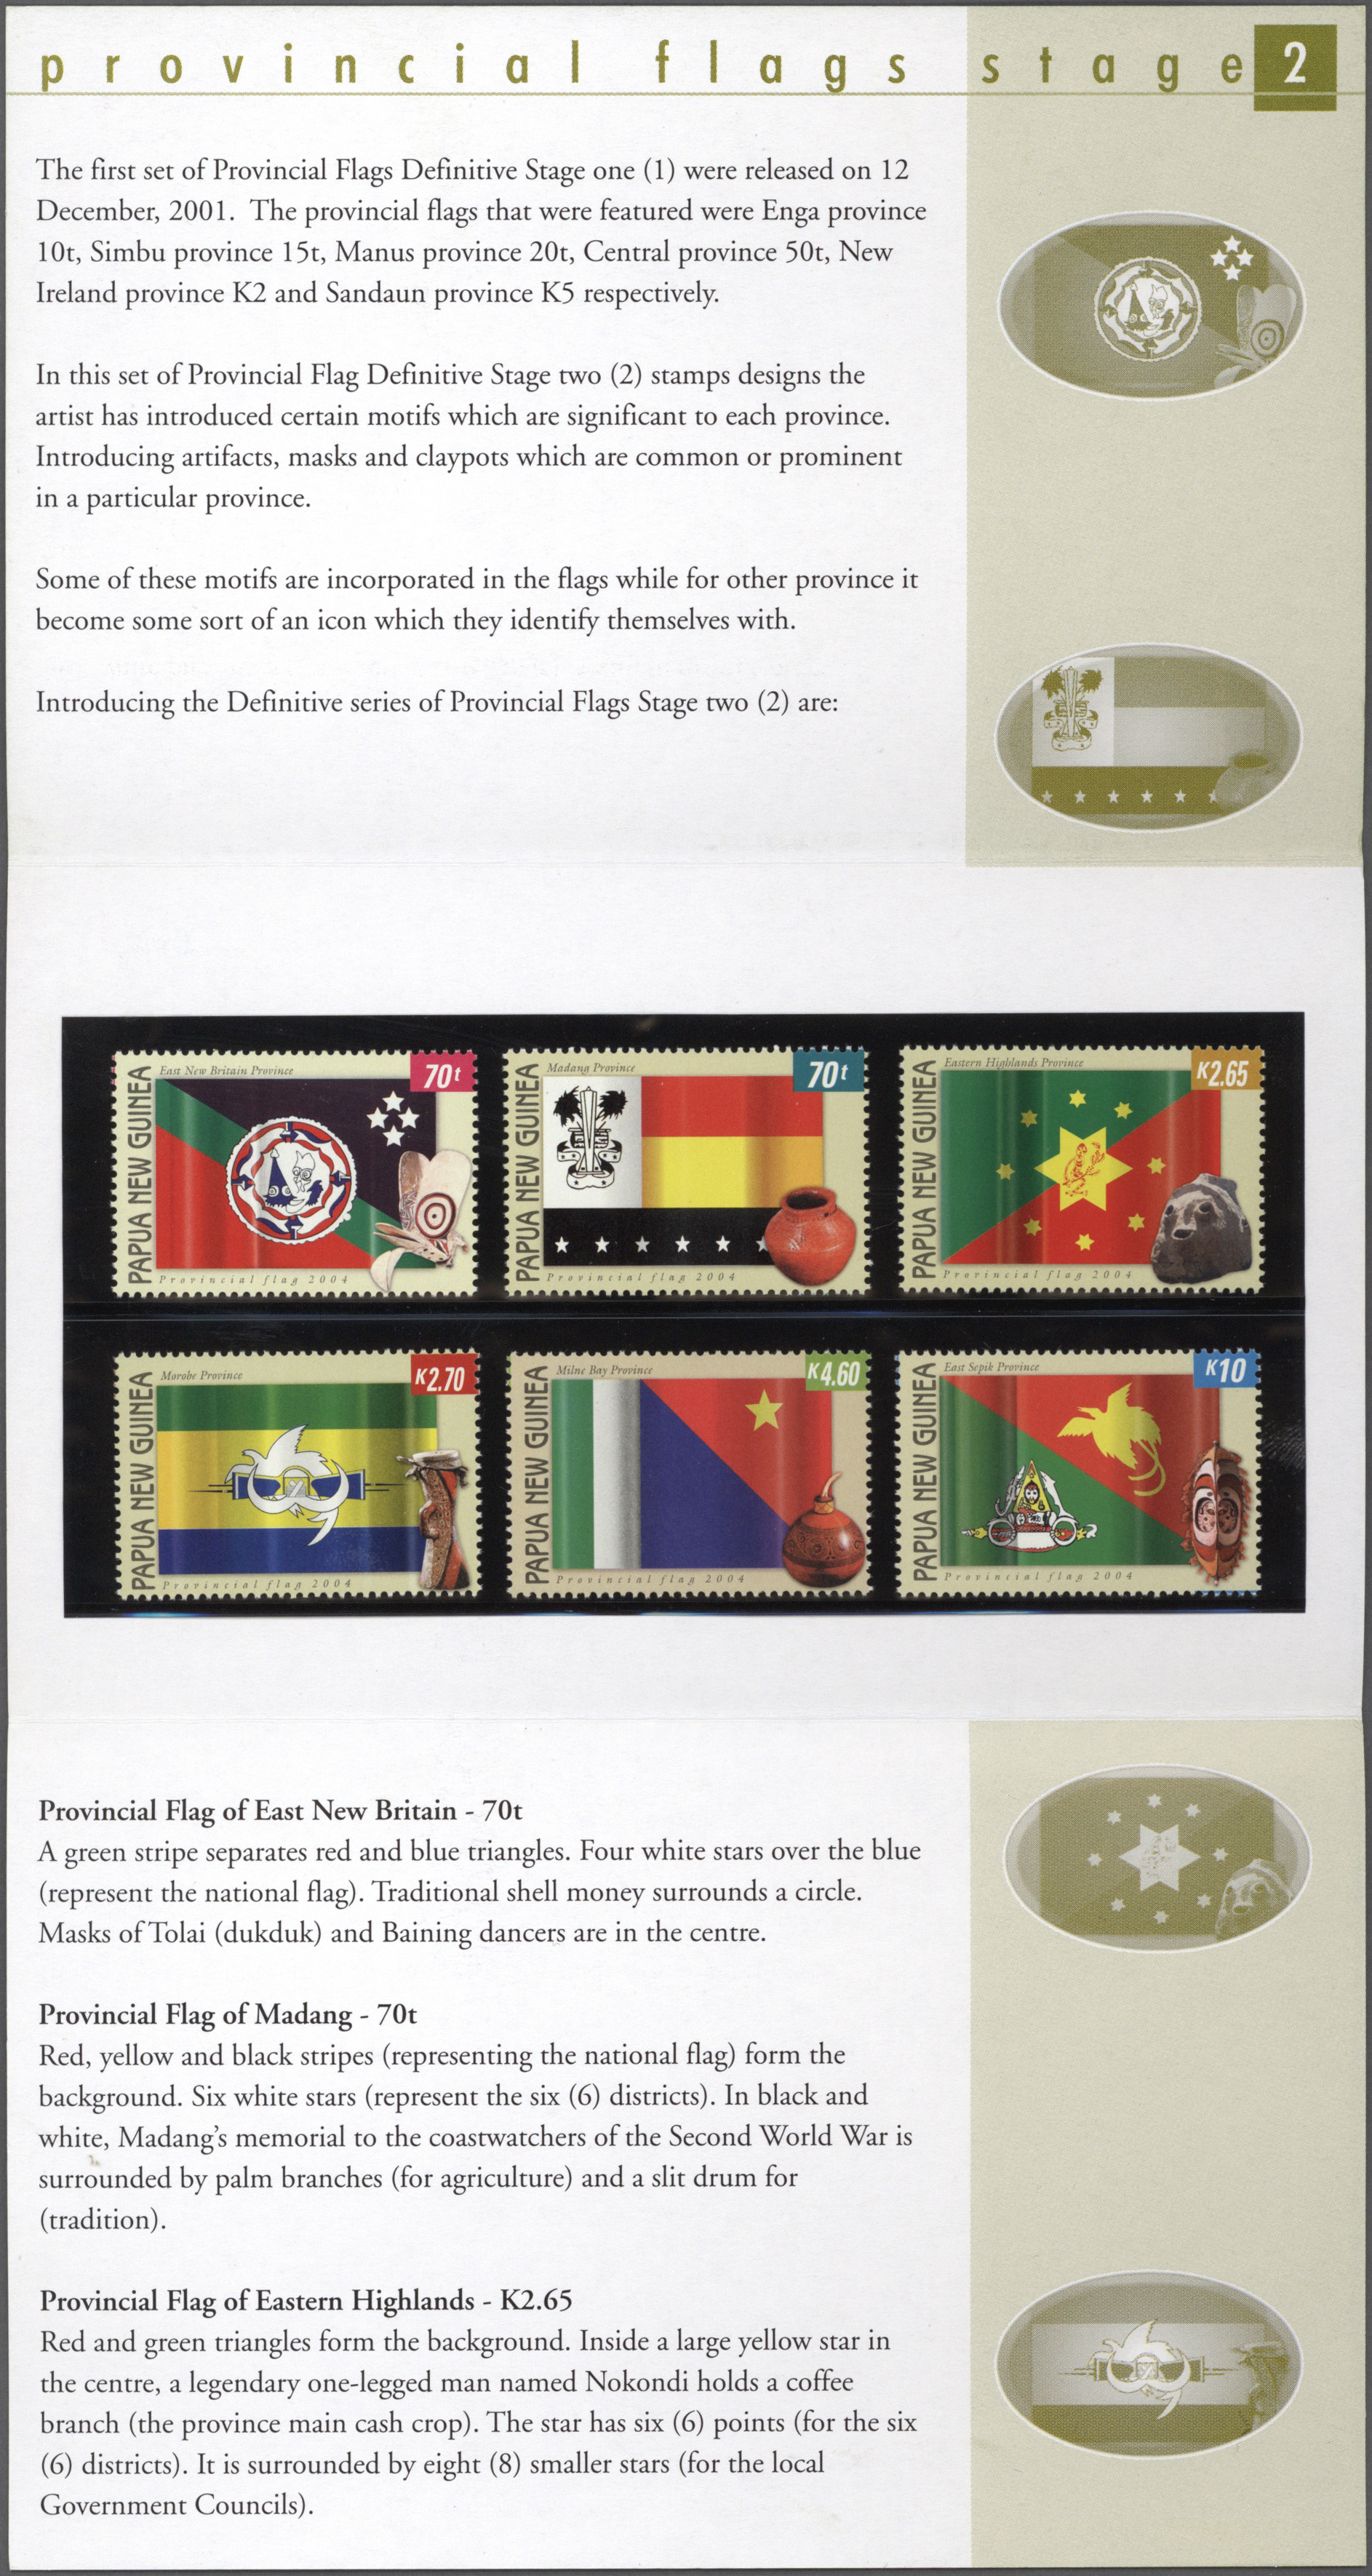 Lot 29618 - papua neuguinea  -  Auktionshaus Christoph Gärtner GmbH & Co. KG Sale #44 Collections Overseas, Europe